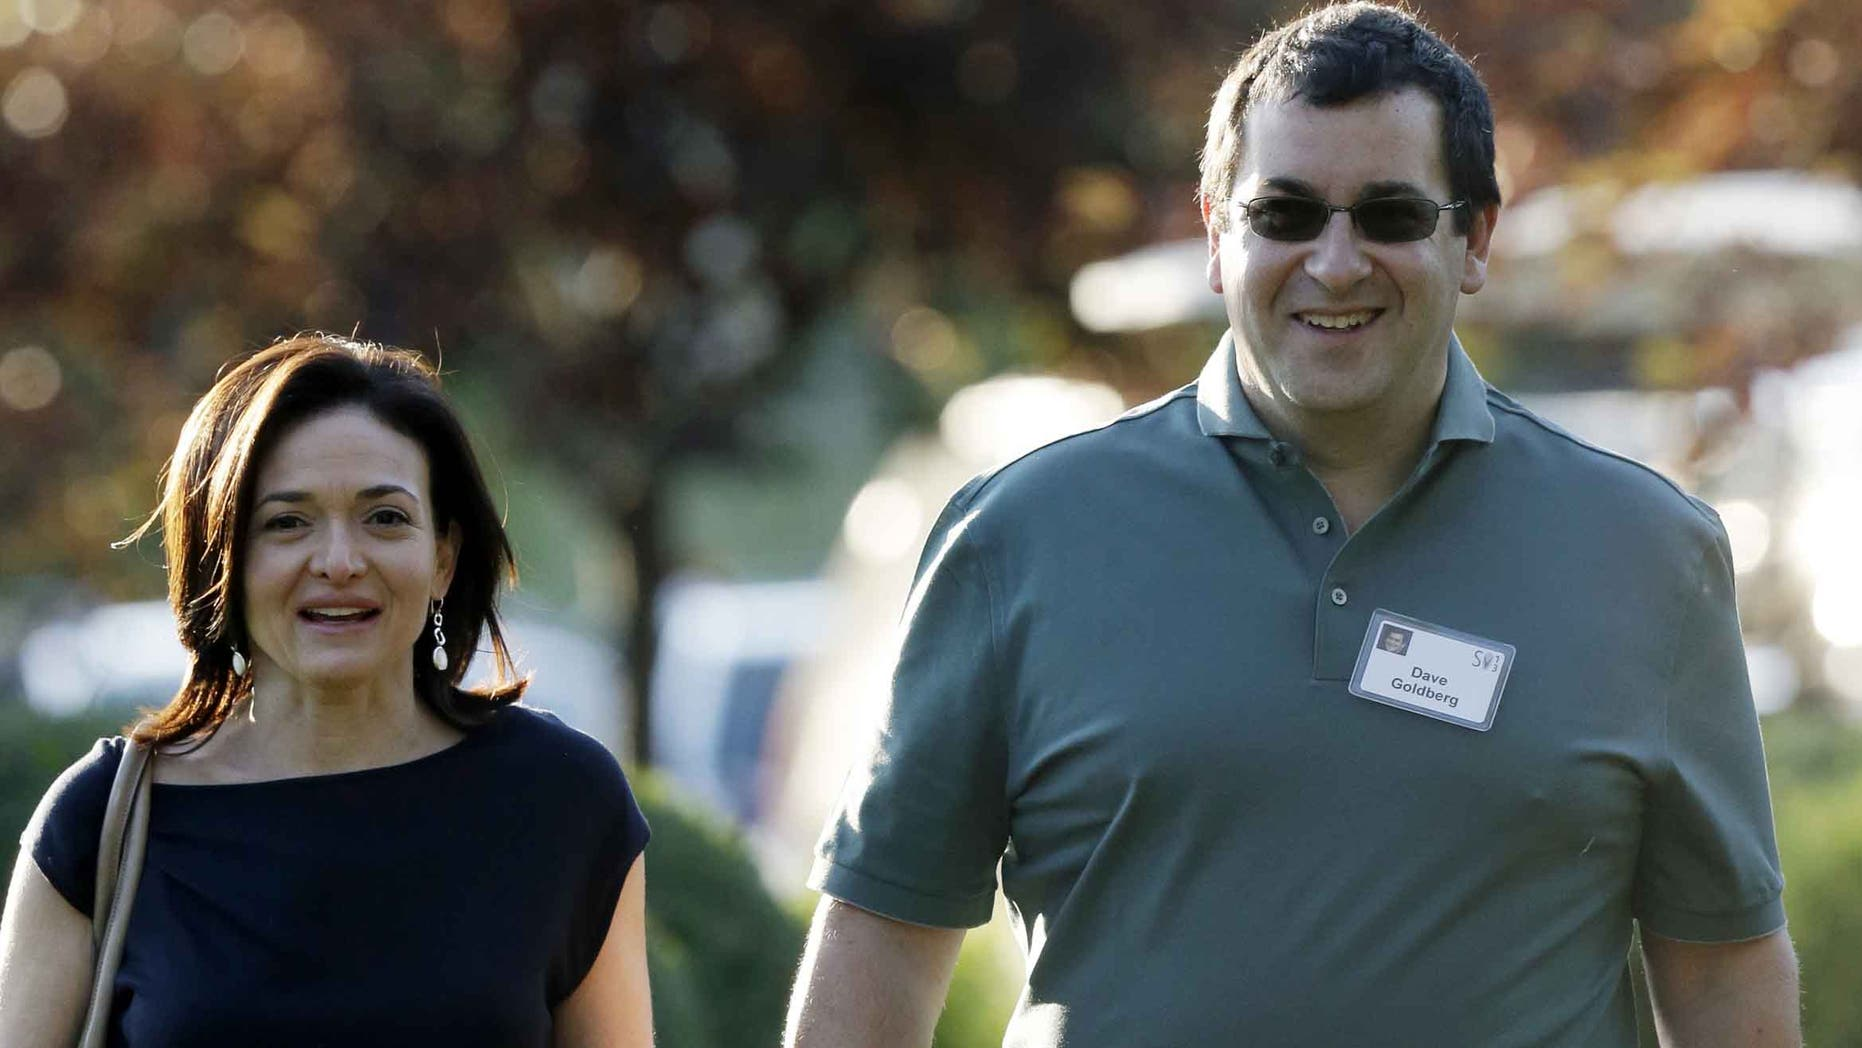 Sheryl Sandberg, COO of Facebook, and her husband David Goldberg in a 2013 file photo.